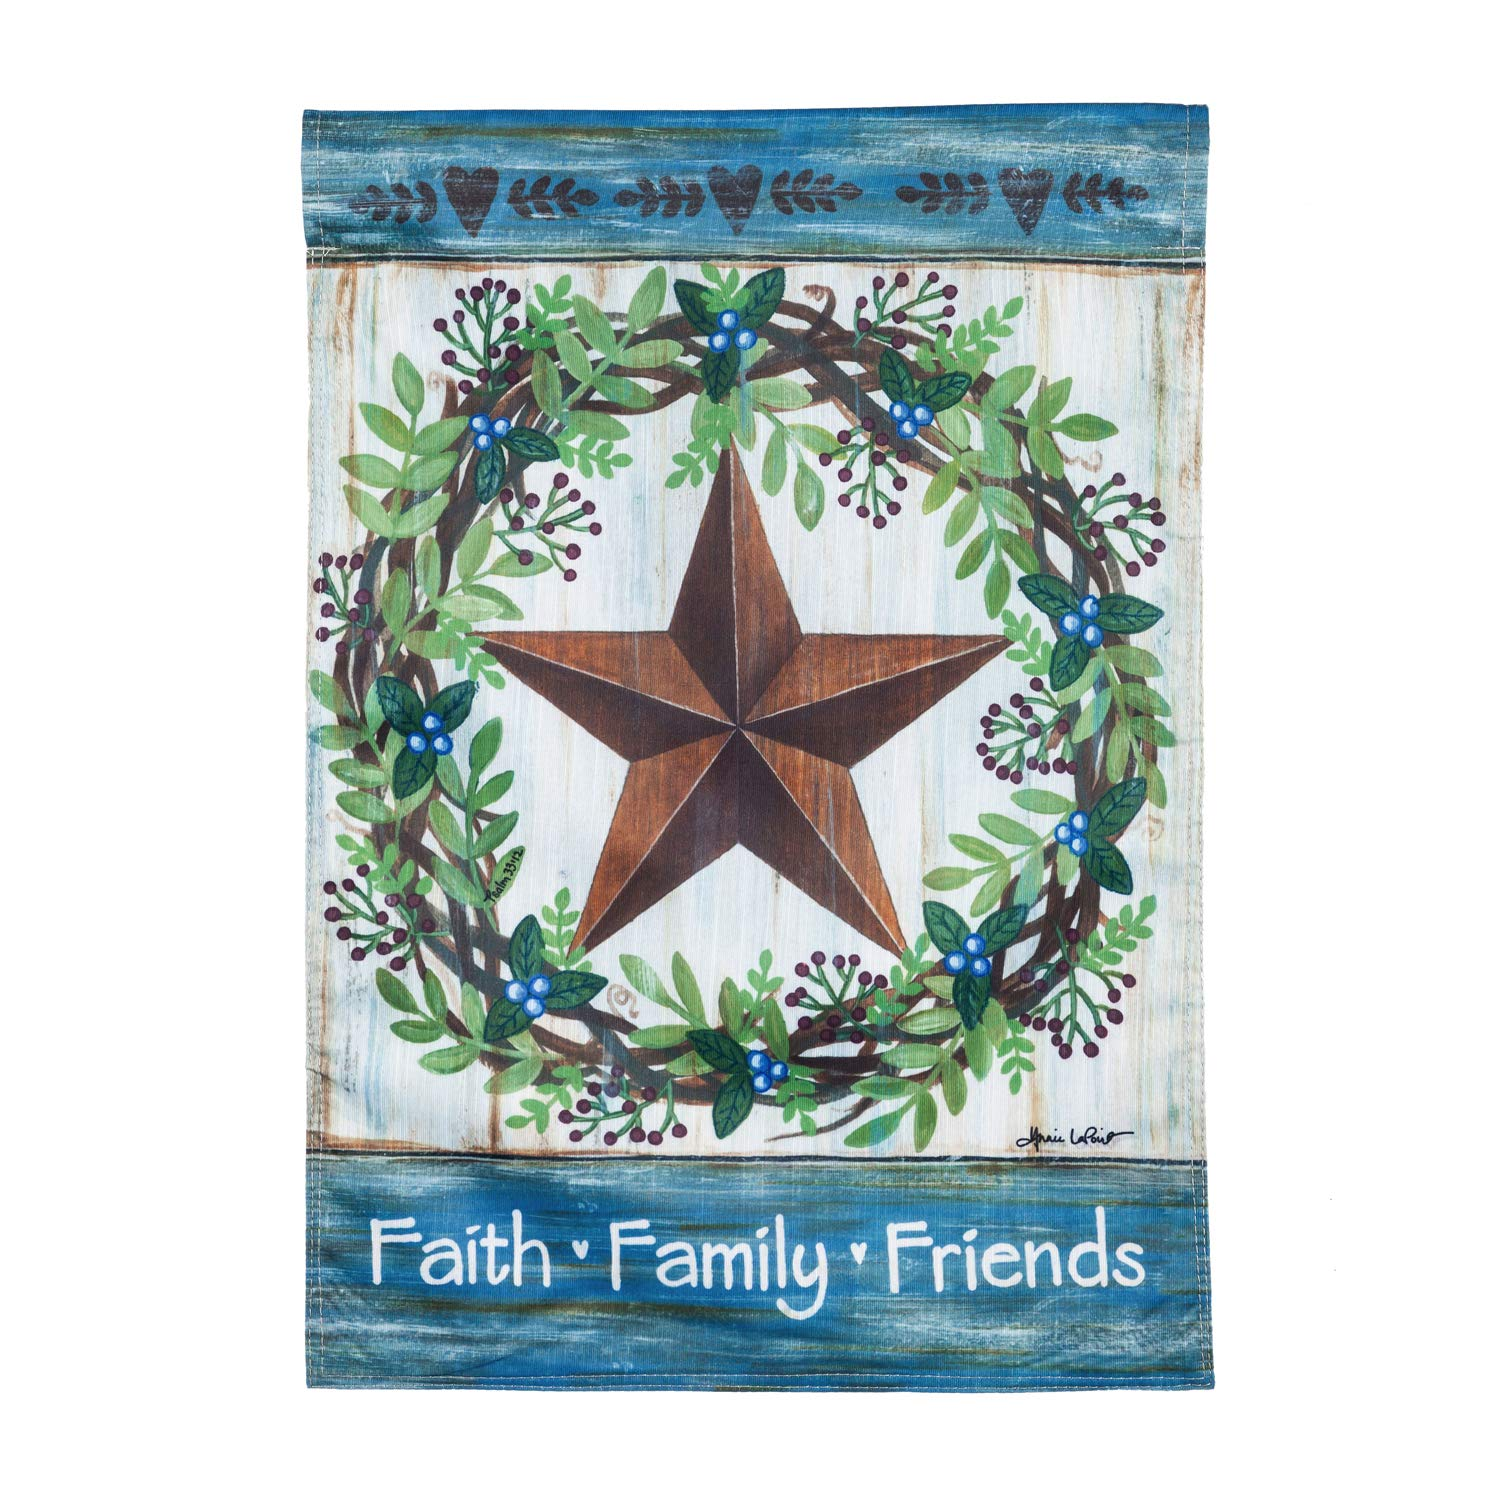 Evergreen Flag Beautiful Faith Family Friends Country Star Strié Garden Flag - 13 x 1 x 18 Inches Fade and Weather Resistant Outdoor Decoration For Homes, Yards and Gardens